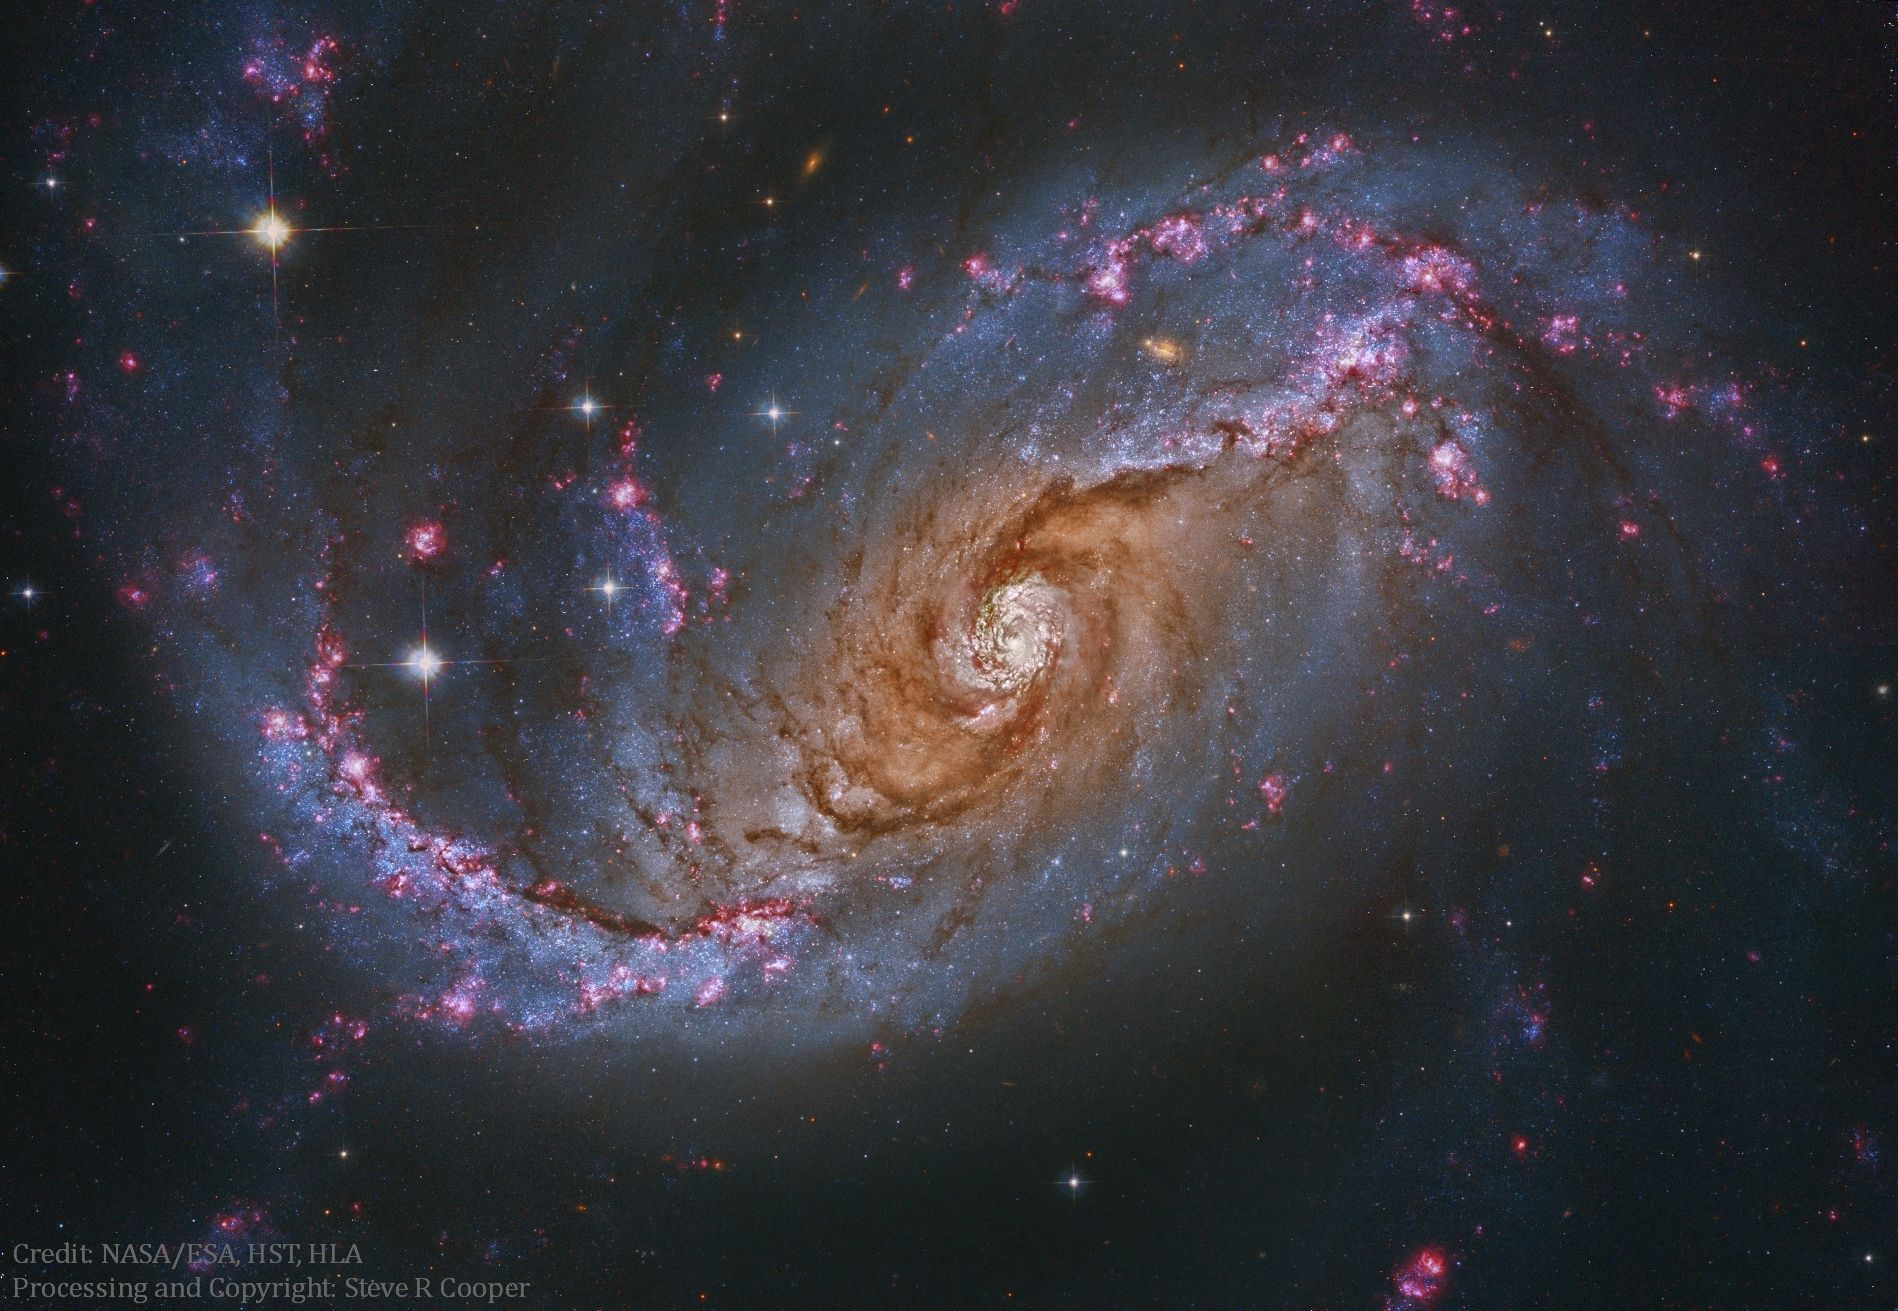 Ngc 1672 Barred Spiral Galaxy From Hubble Image Credit Hubble Legacy Archive Nasa Esa Processing Copyright Steve Cooper The H Spiral Galaxy Hubble Space Telescope Hubble Space